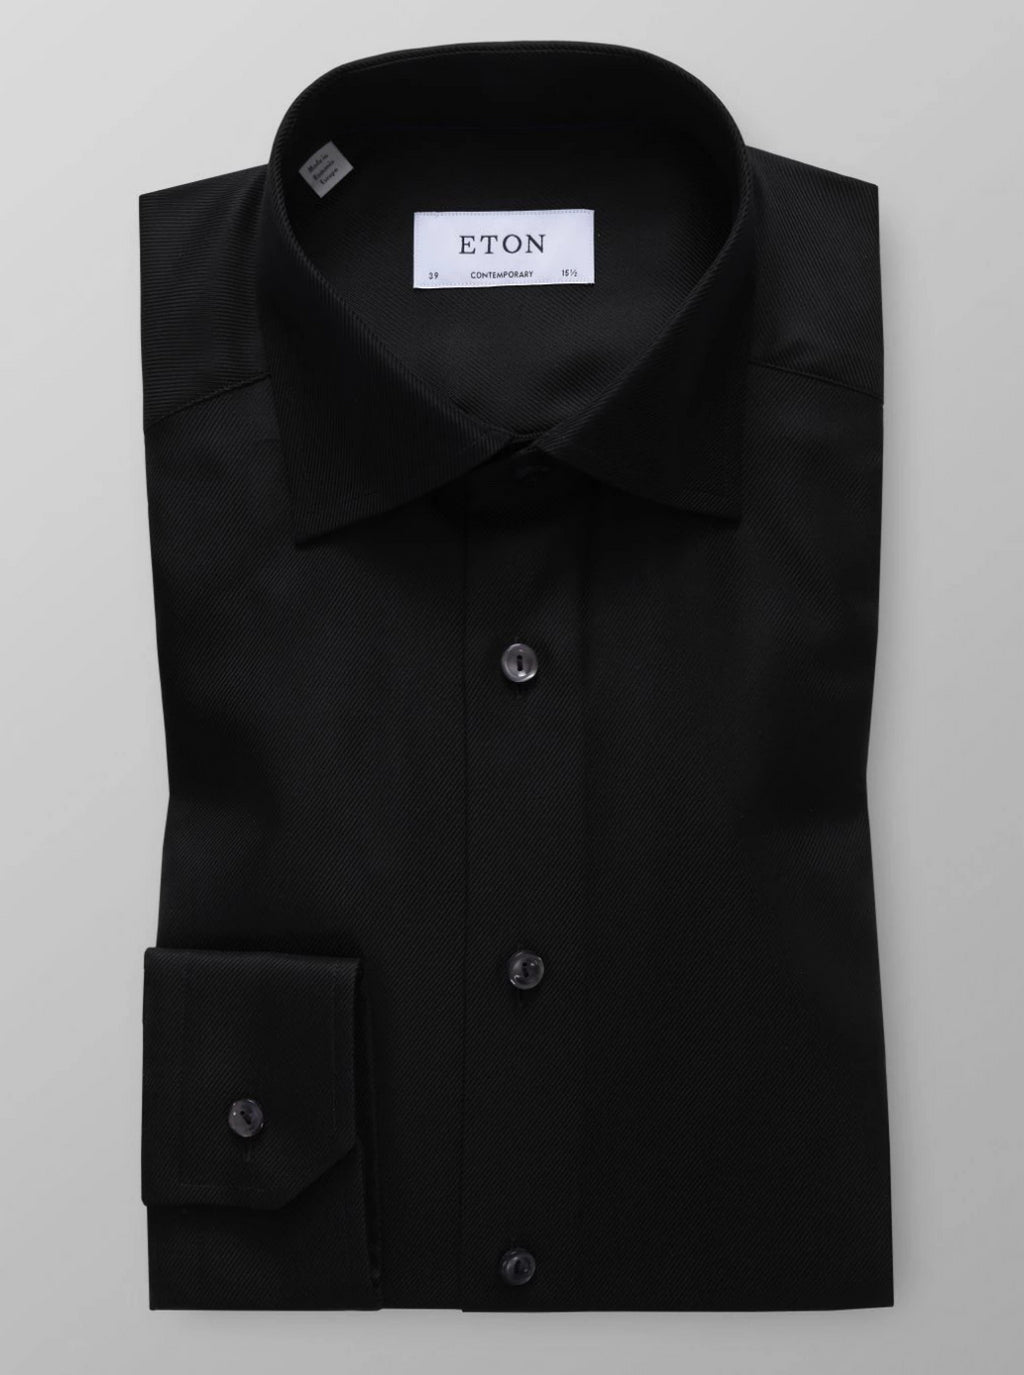 ETON brand premium quality men's shirt black textured twill